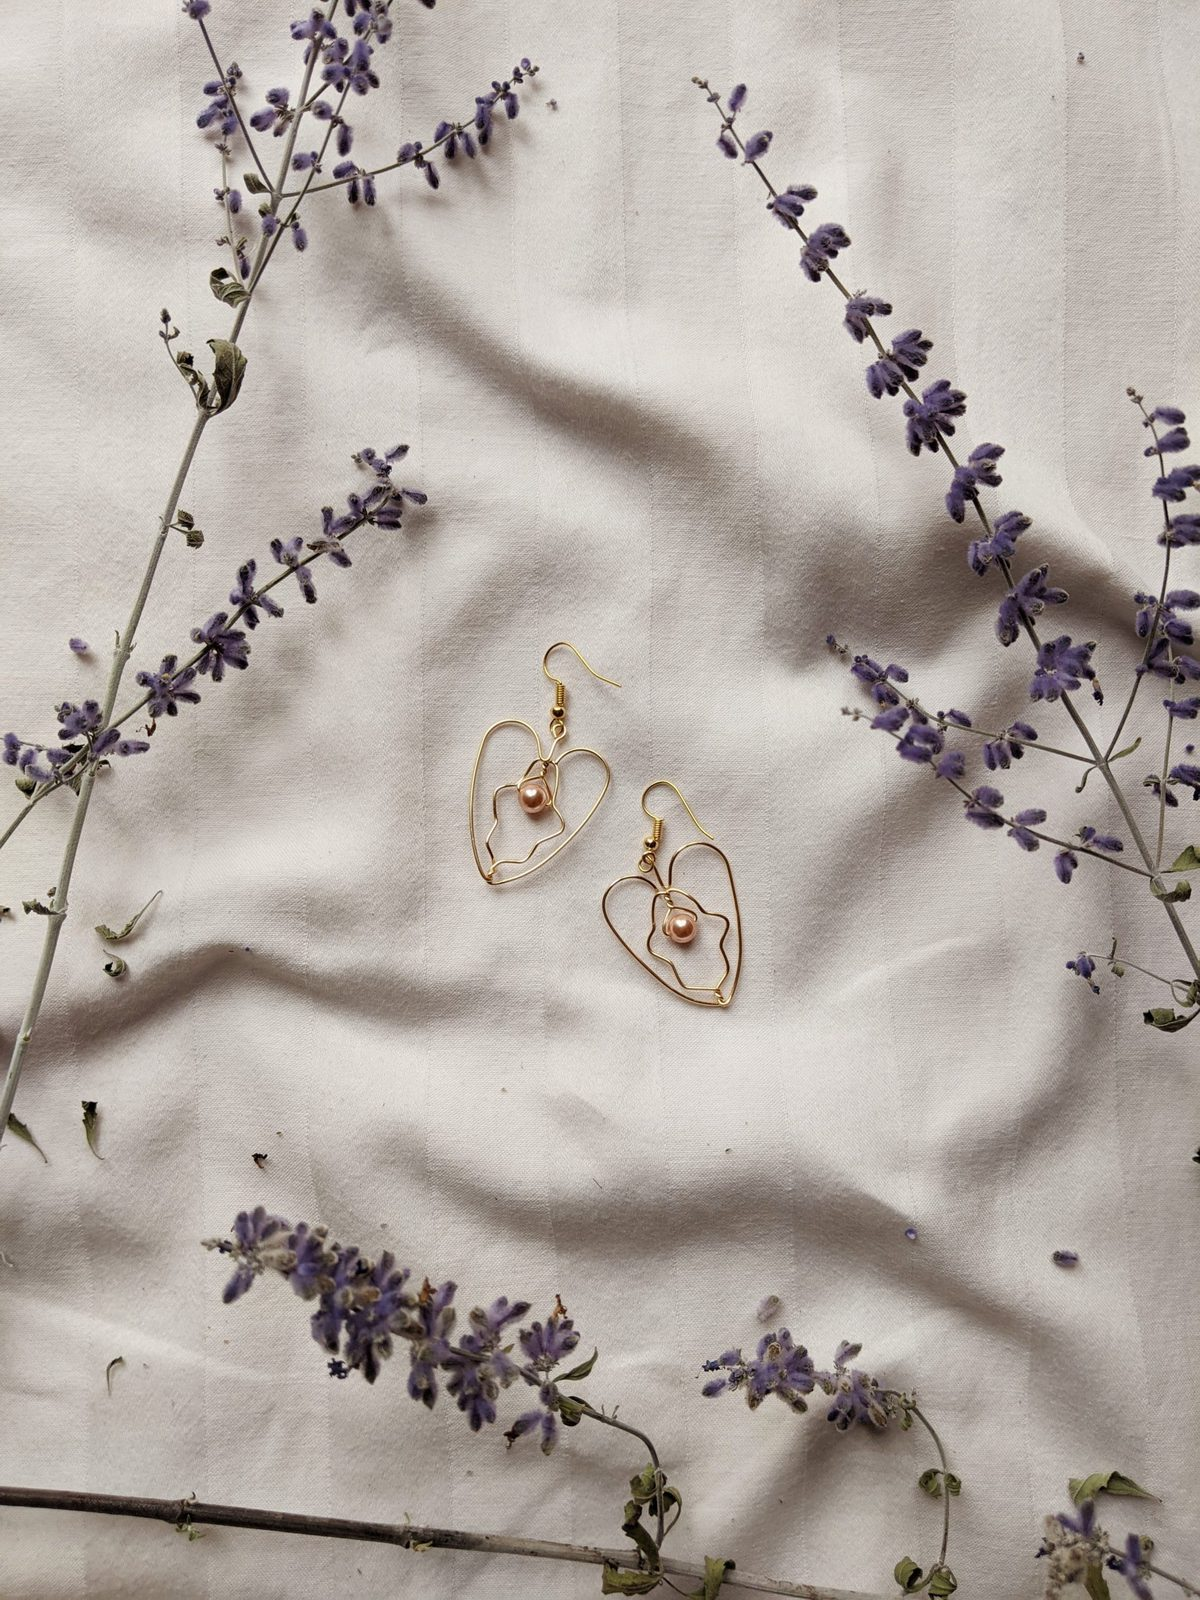 A pair of gold wire earrings on a white sheet surrounded by springs of lavender